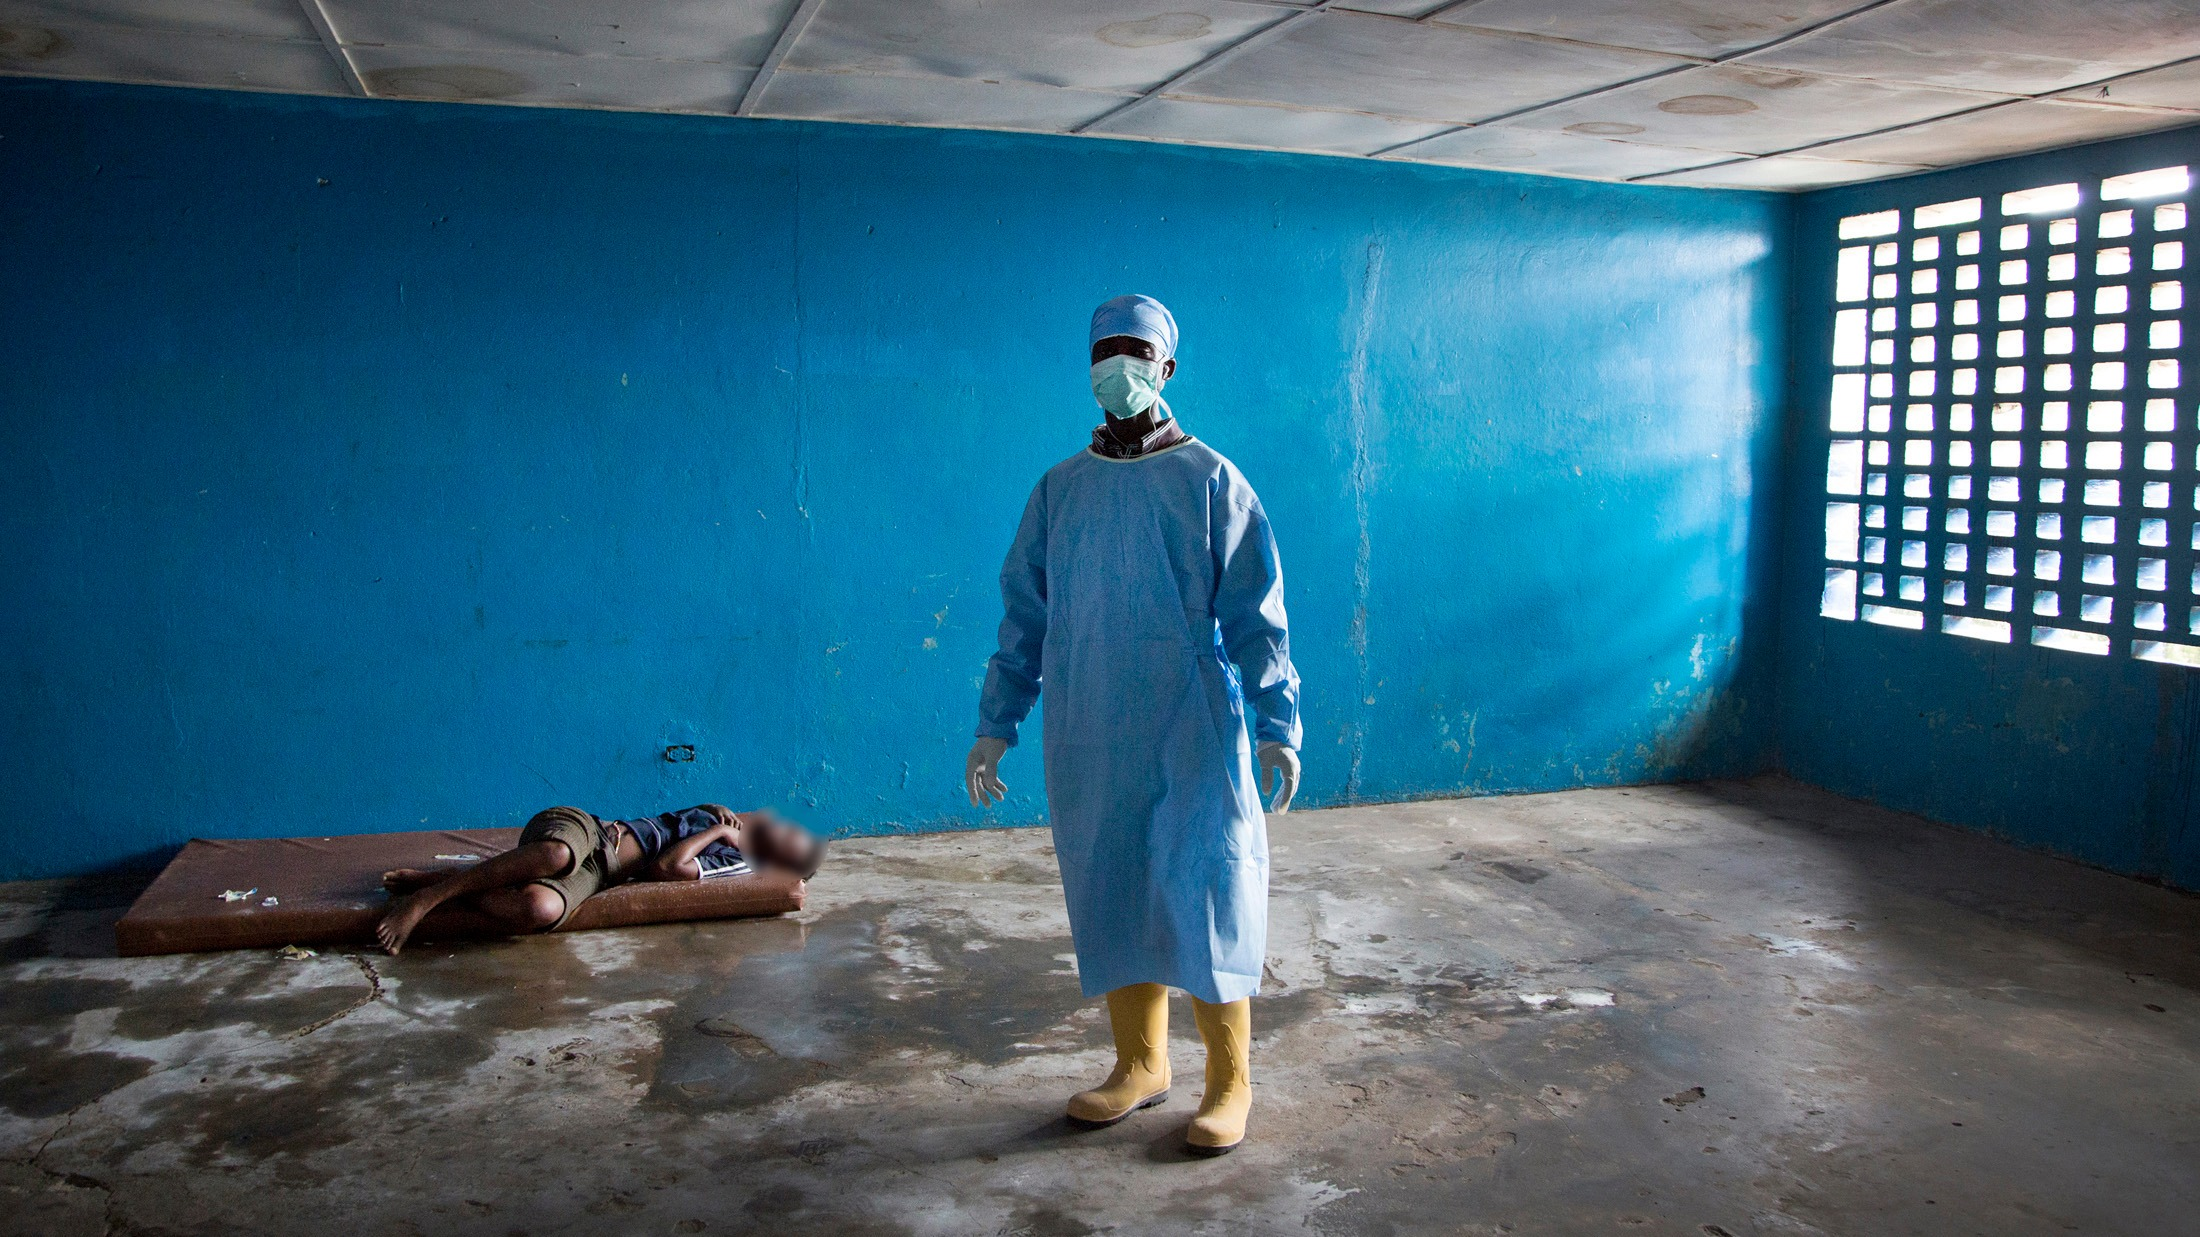 A healthcare worker stands next to a woman who had died of Ebola related symptoms. (Sep 2014)